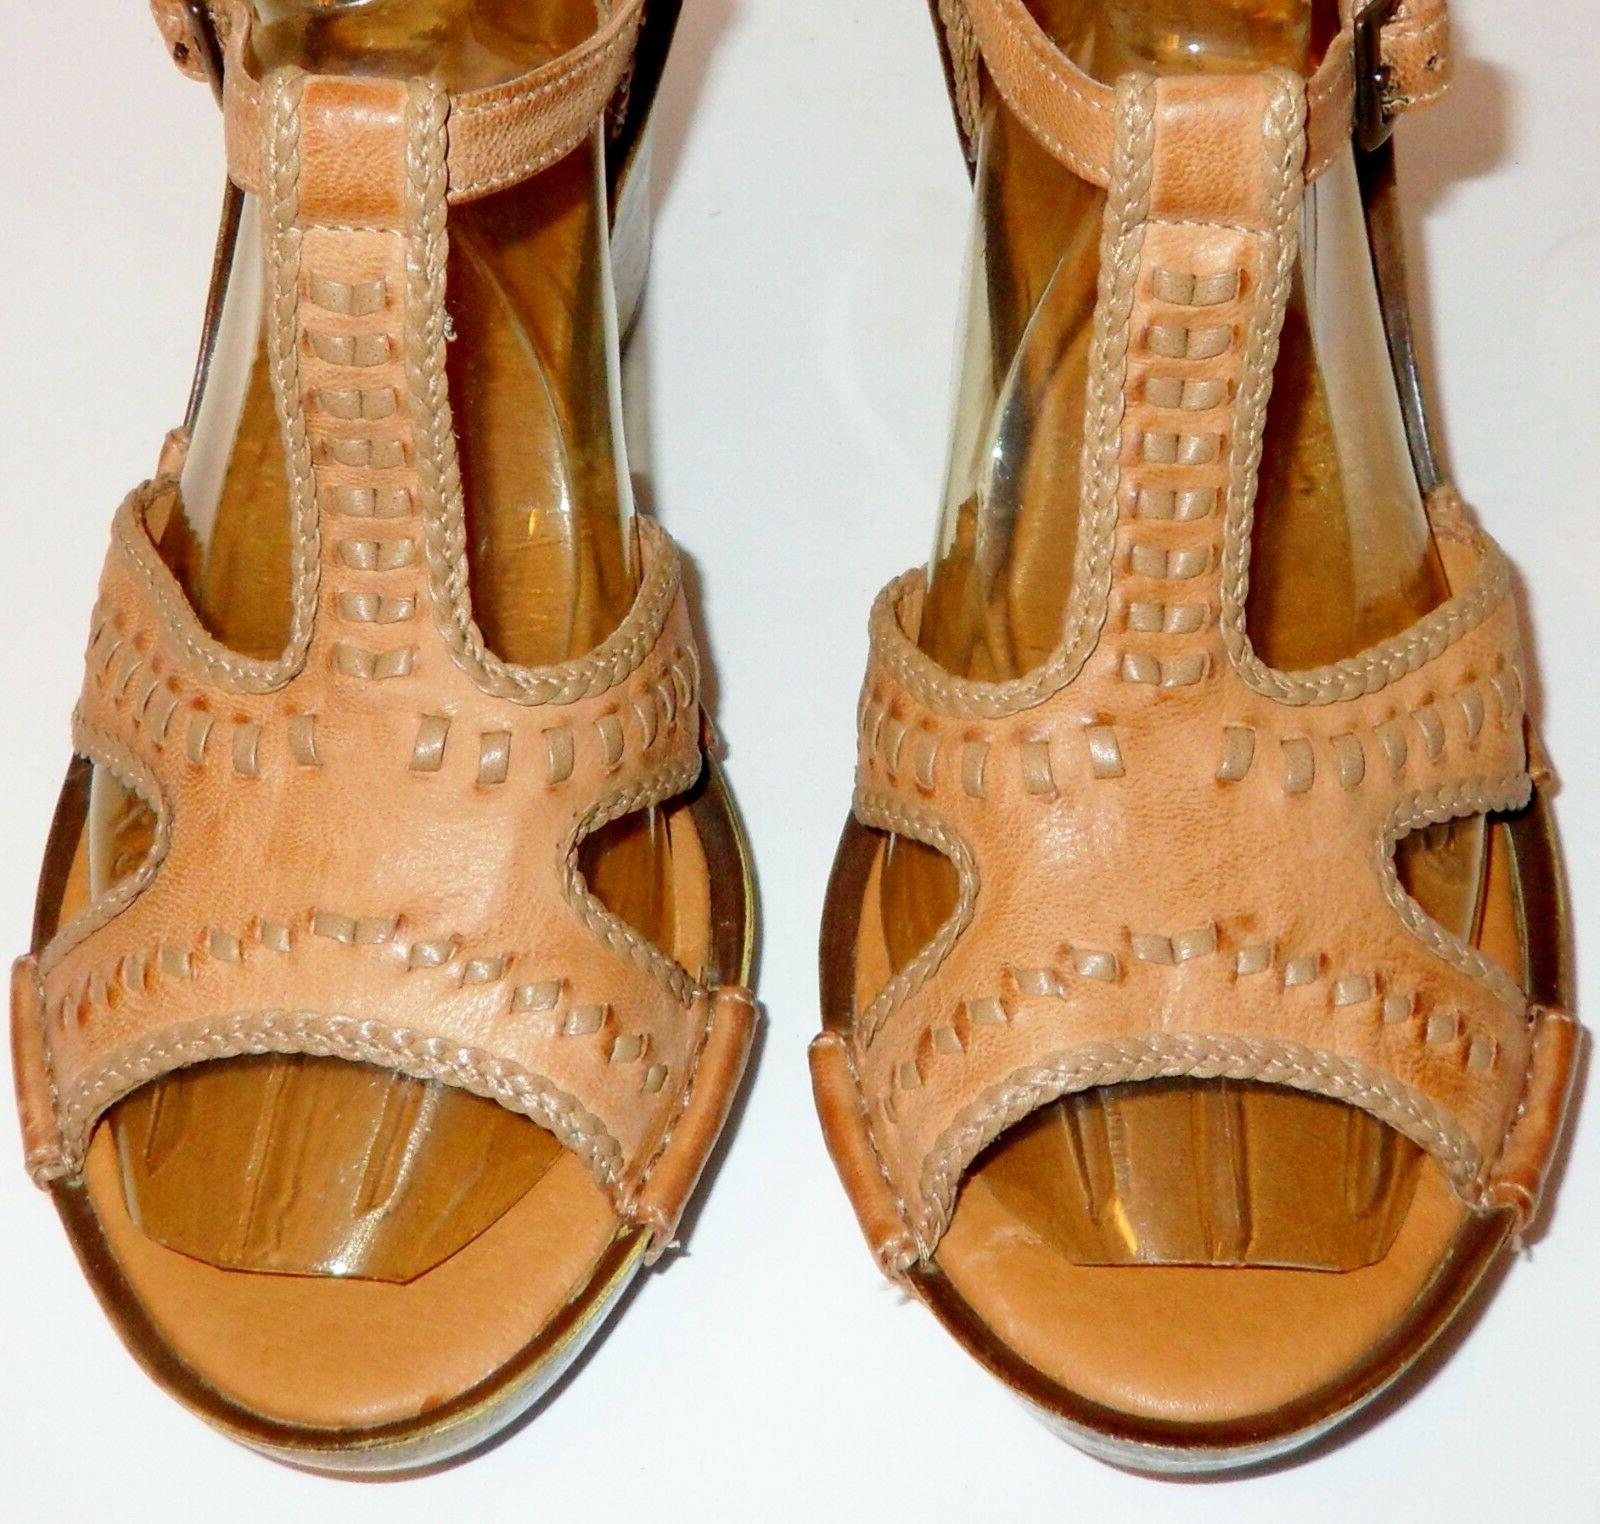 NEW CLARKS WEDGE SIZE 8.5 M! FREE